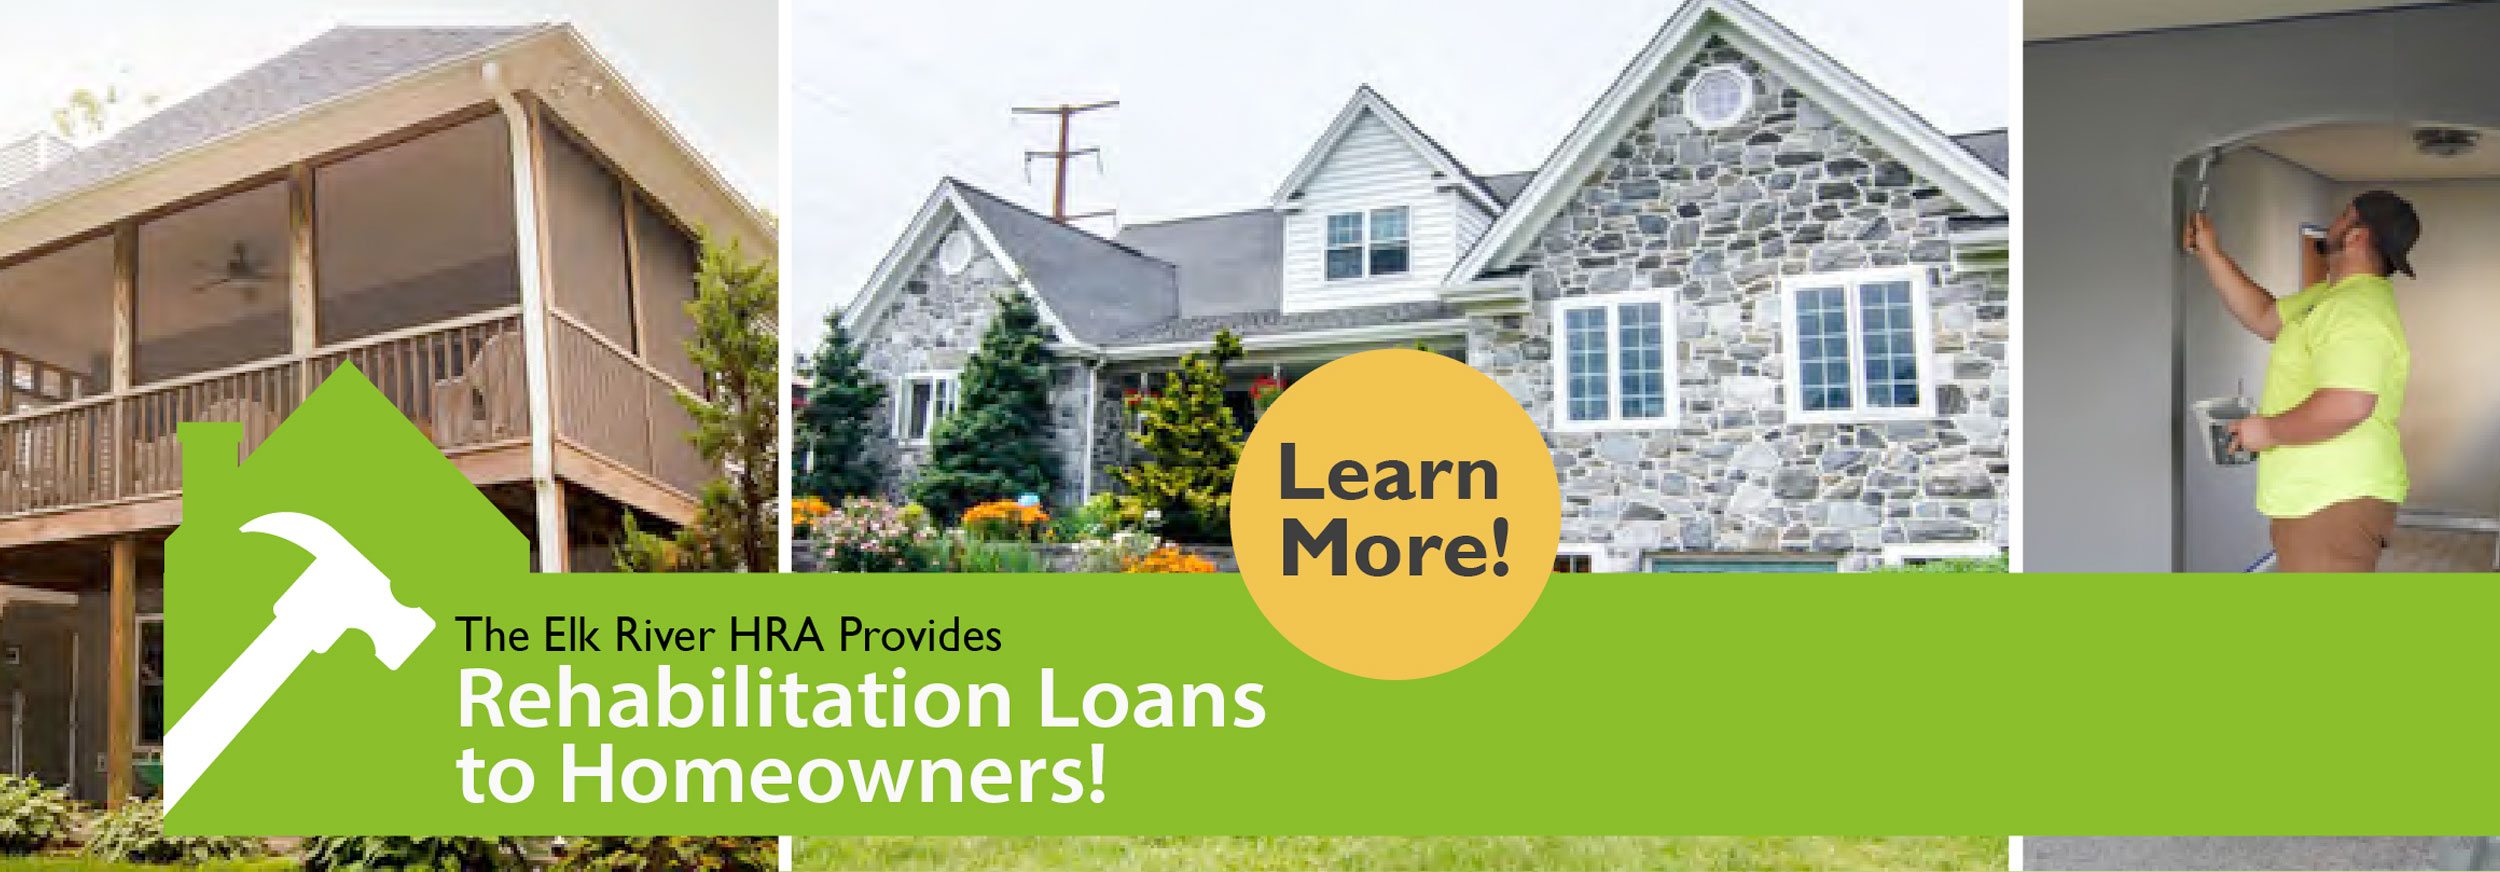 Elk River HRA offers rehabilitation loans to homeowners